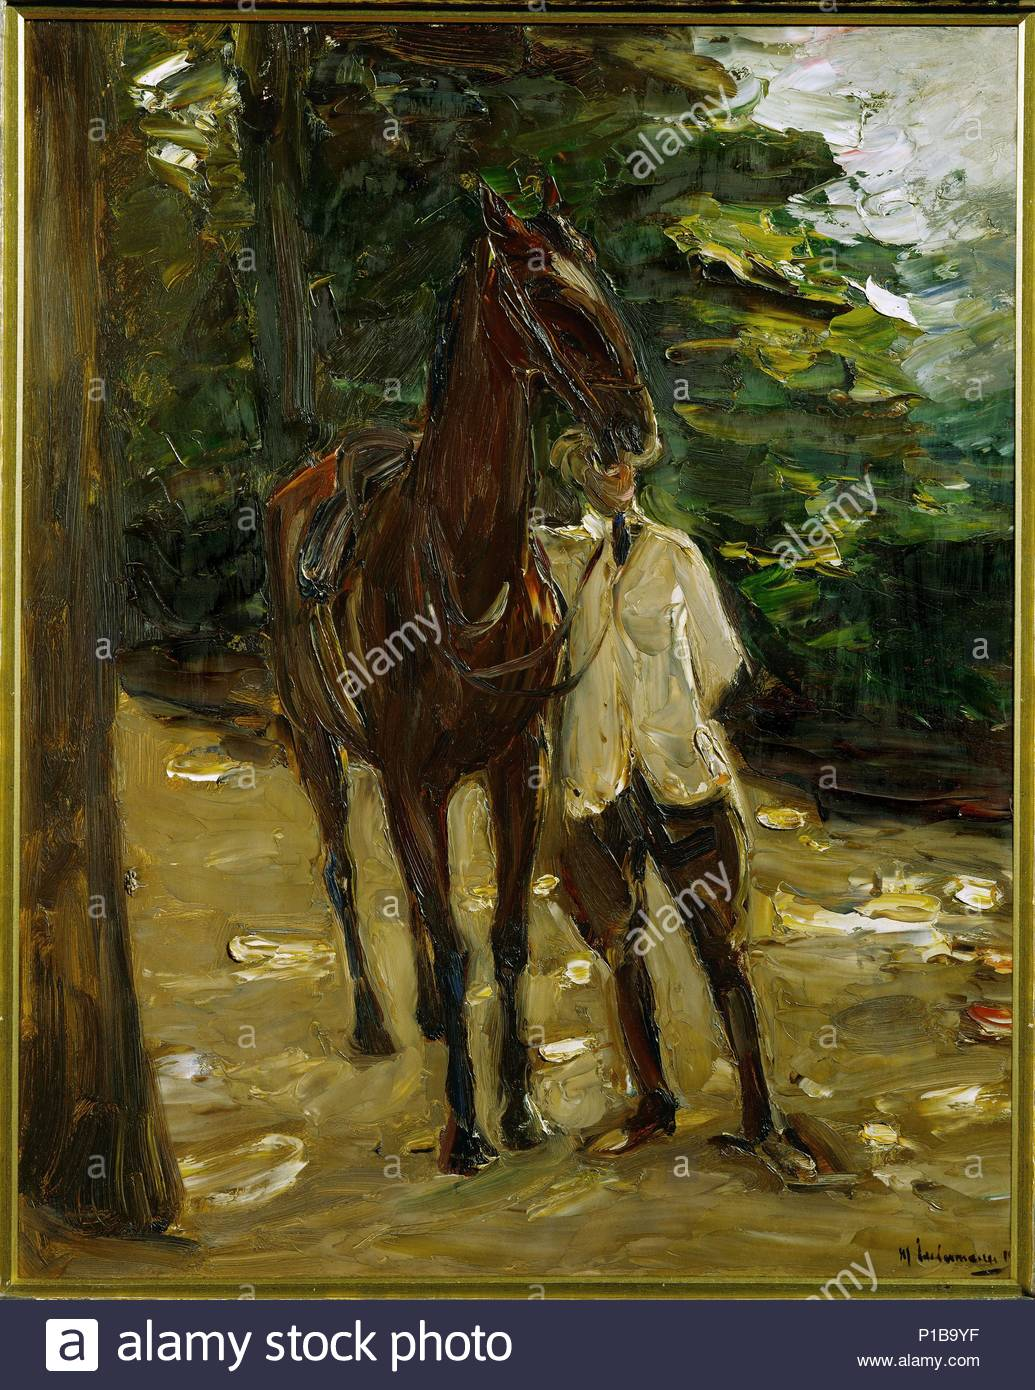 Groom with horse, 1912 Cardboard, 81 x 54,5 cm Inv. WRM 1190. Author: Max Liebermann (1847-1935). Location: Wallraf-Richartz-Museum, Cologne, Germany. - Stock Image